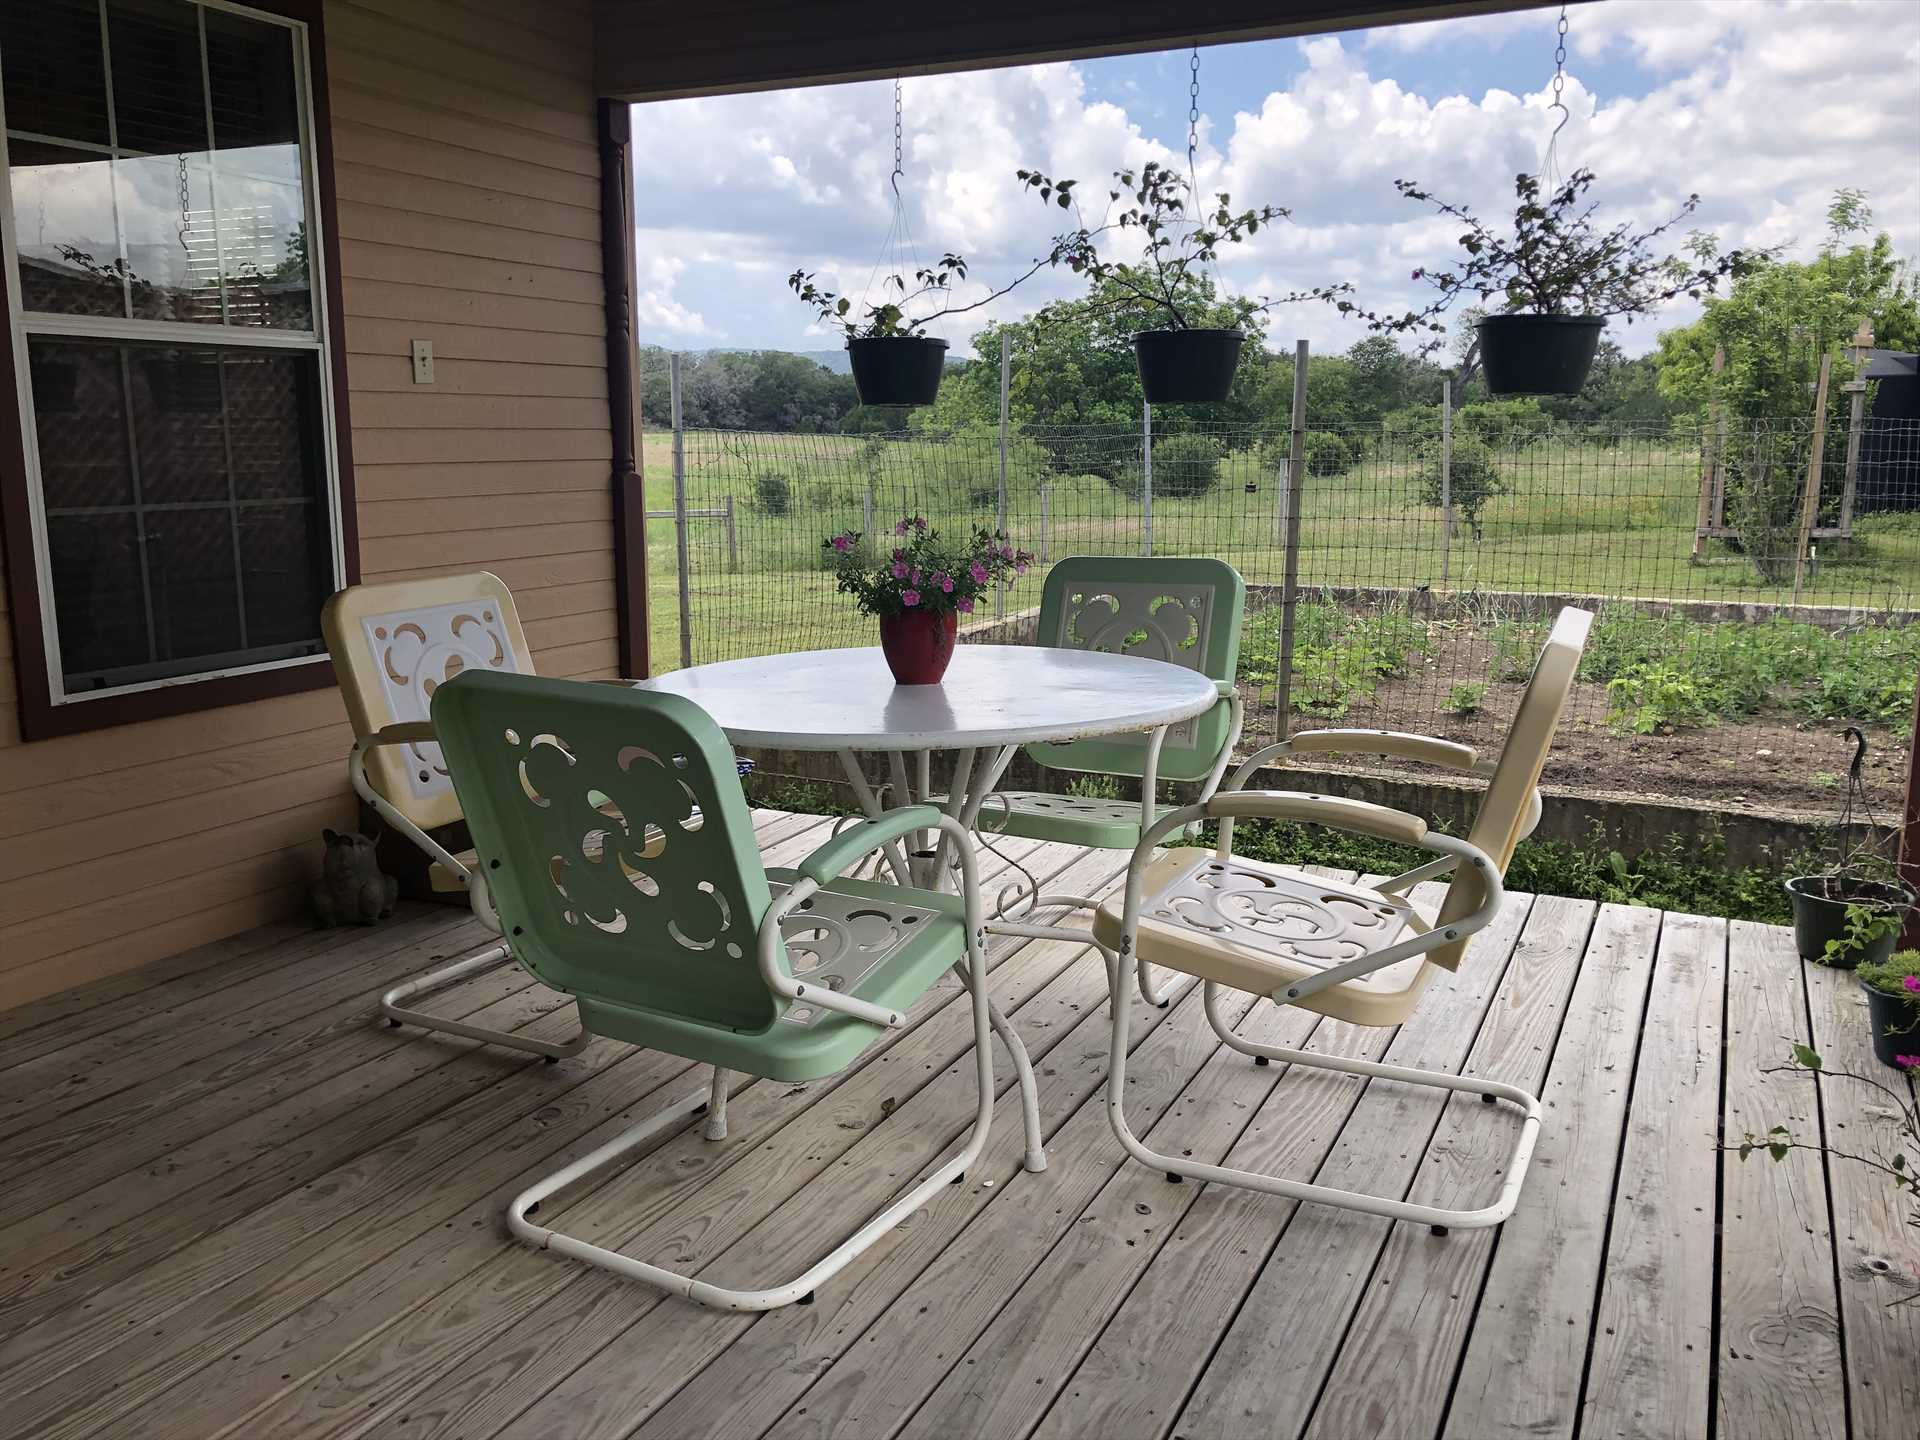 The shaded porch is perfect for so many things: sipping your morning coffee, planning your day, not to mention laughter and conversation.